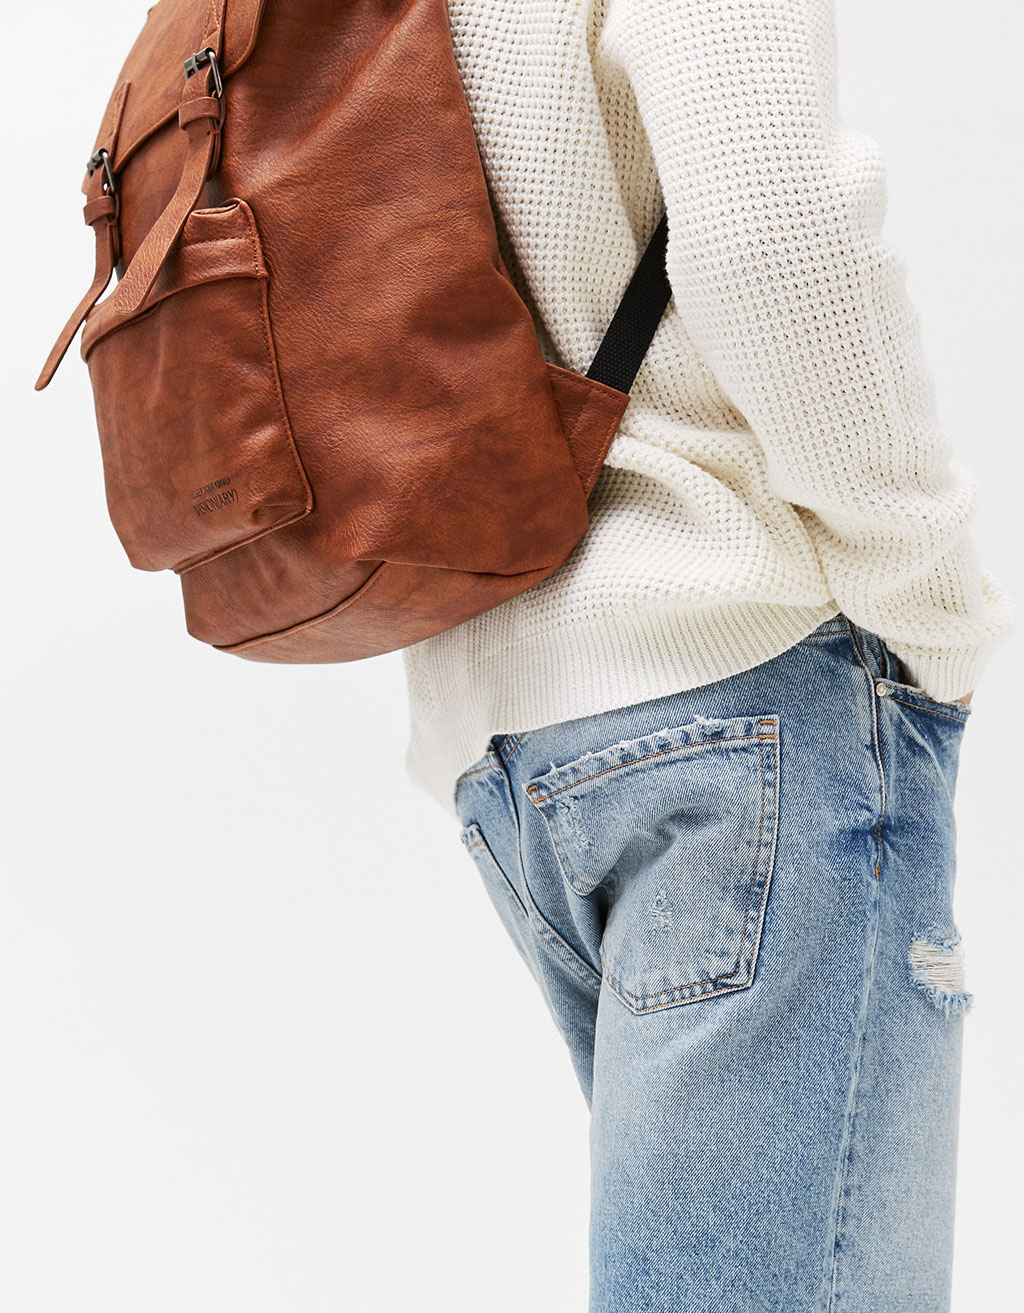 Vintage leather-effect backpack